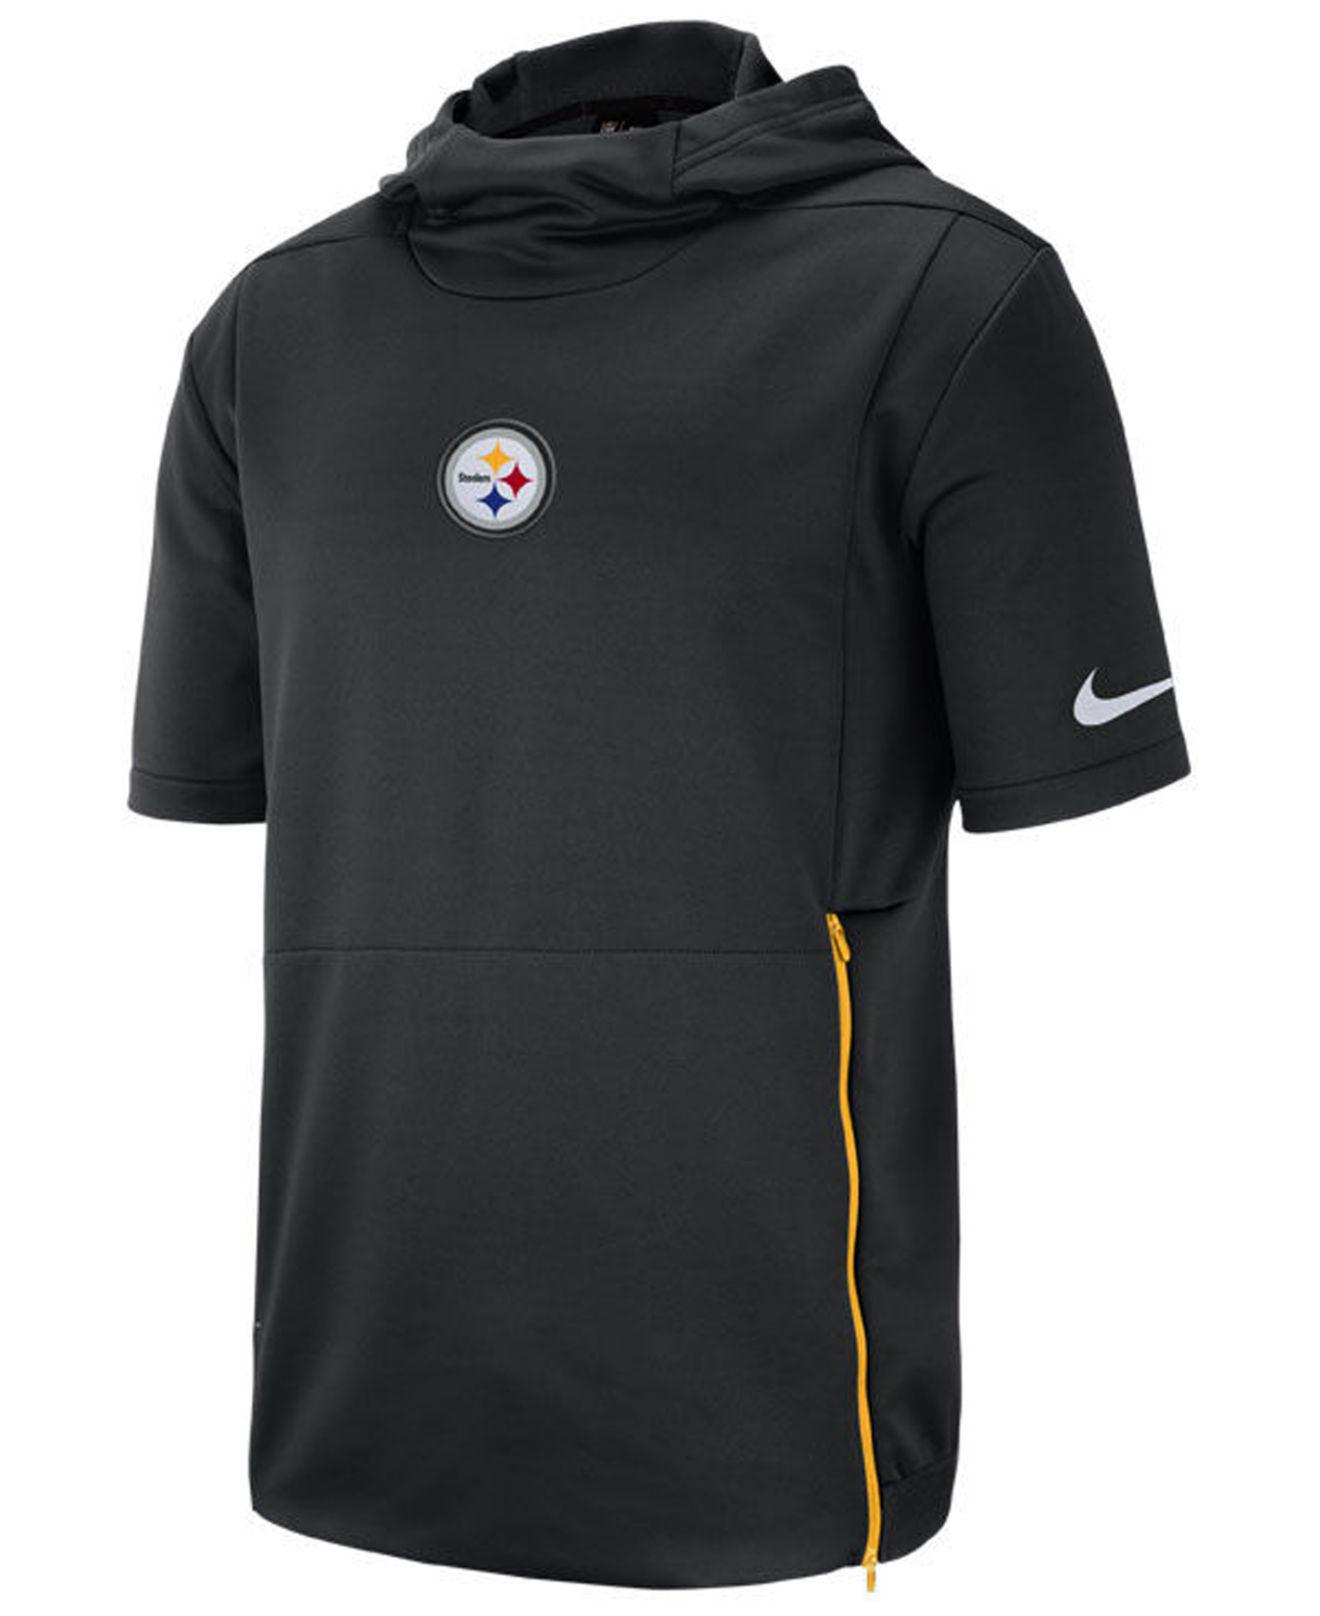 2ce7221d1 Lyst - Nike Pittsburgh Steelers Therma Top Short Sleeve Jacket in ...